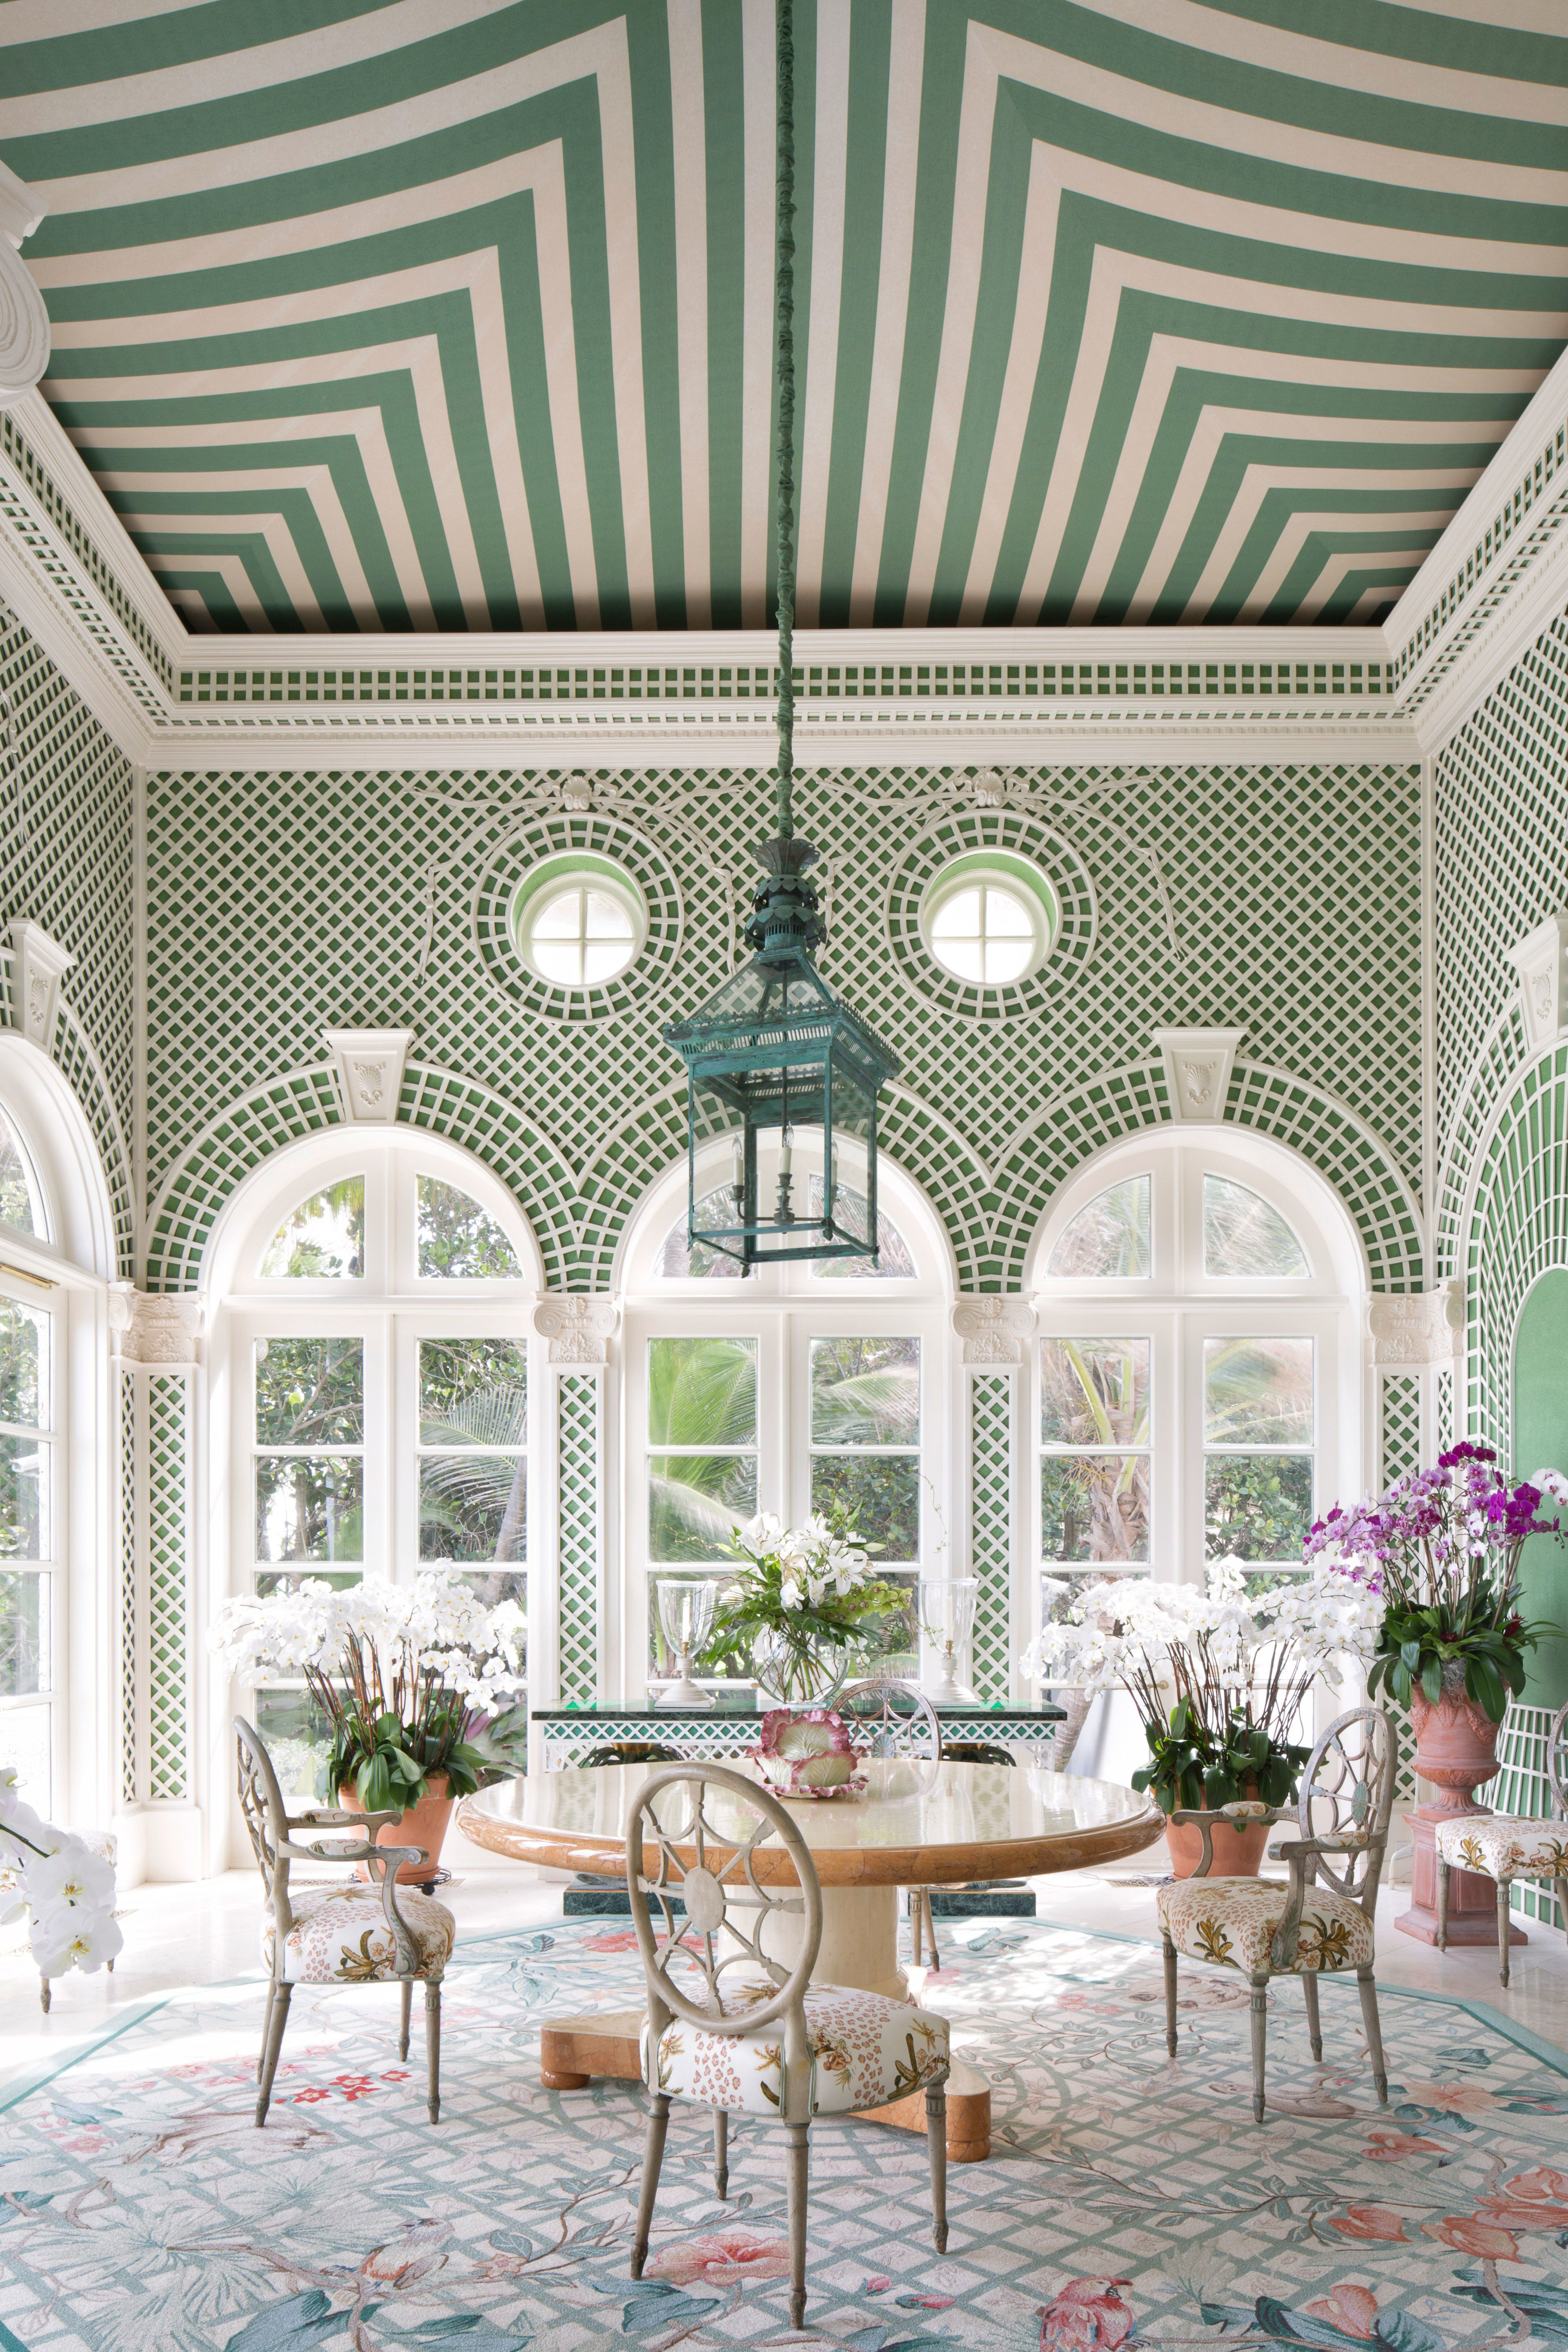 How to Decorate Like You Live in Palm Beach | Palm beach ...